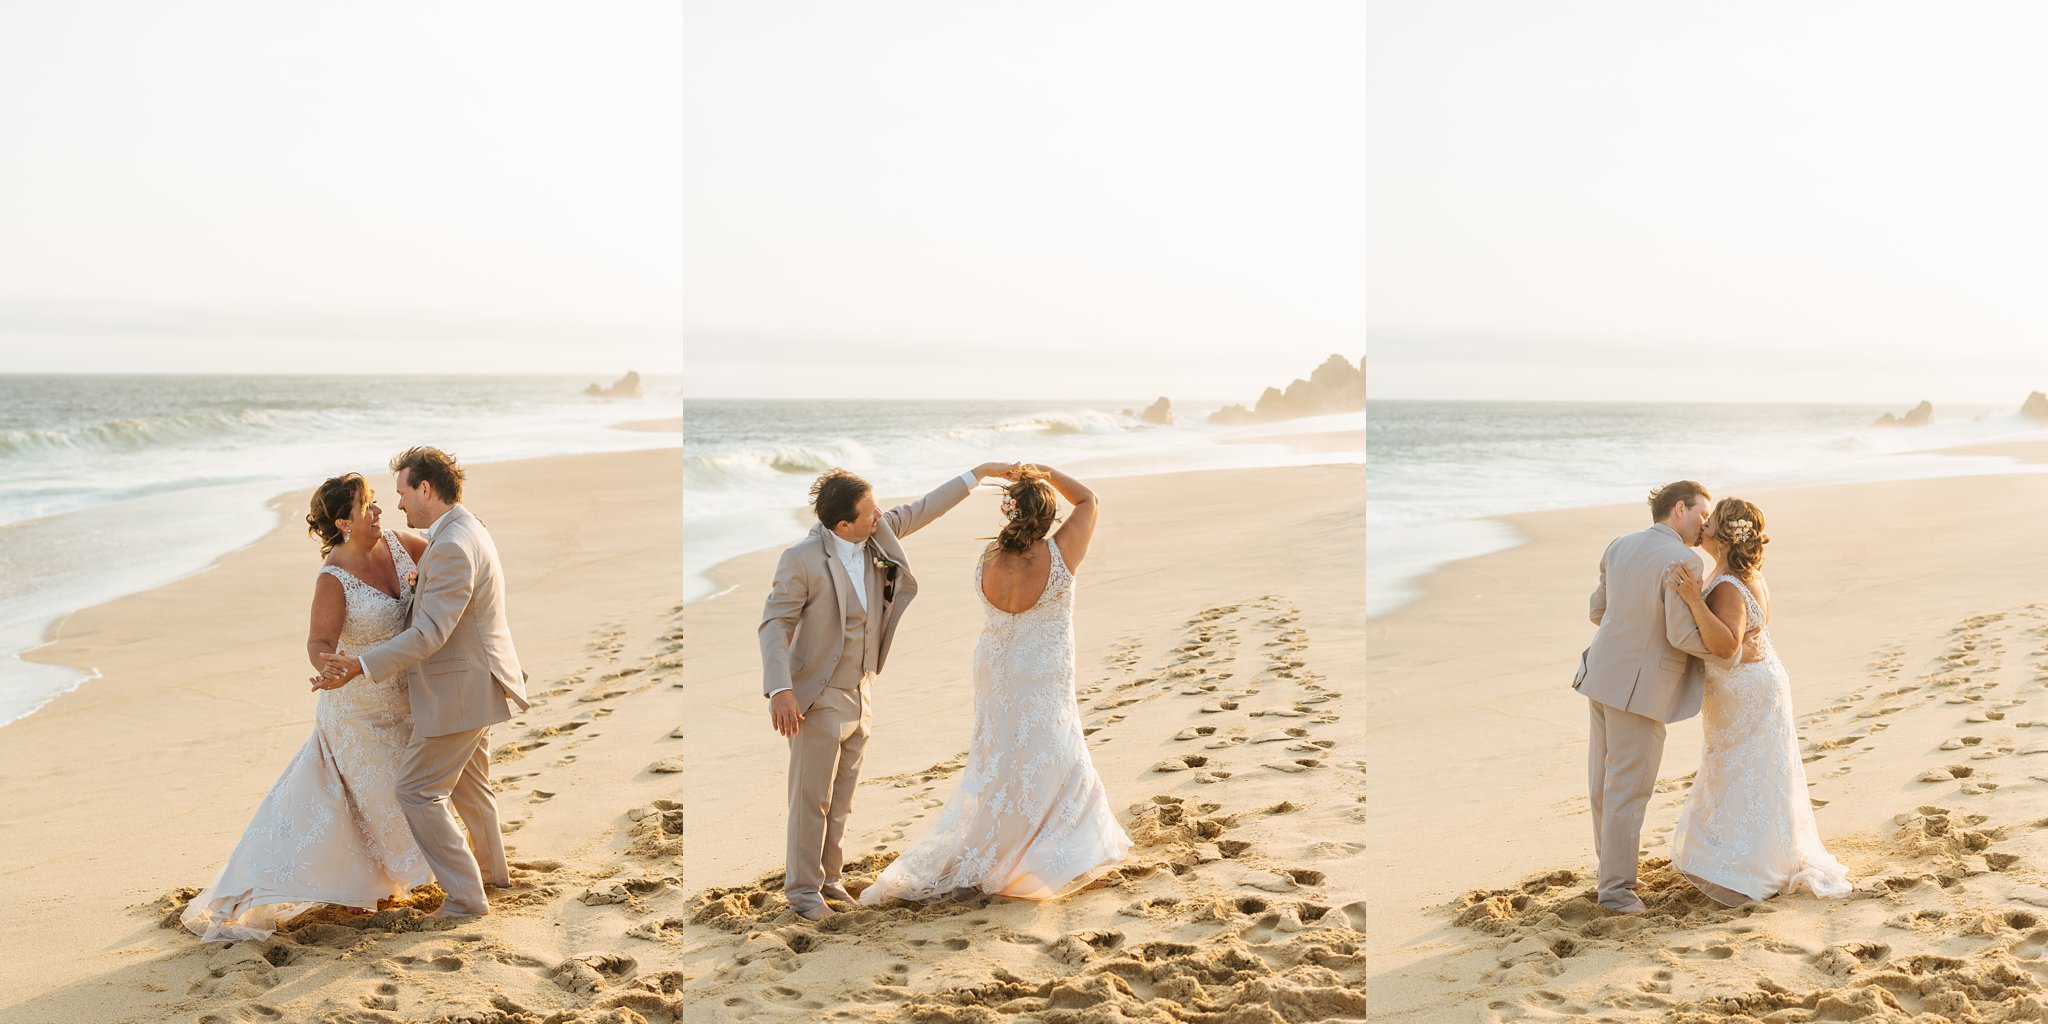 Bride and Groom dance on the beach in Cabo - Mexico Destination Wedding - https://brittneyhannonphotography.com